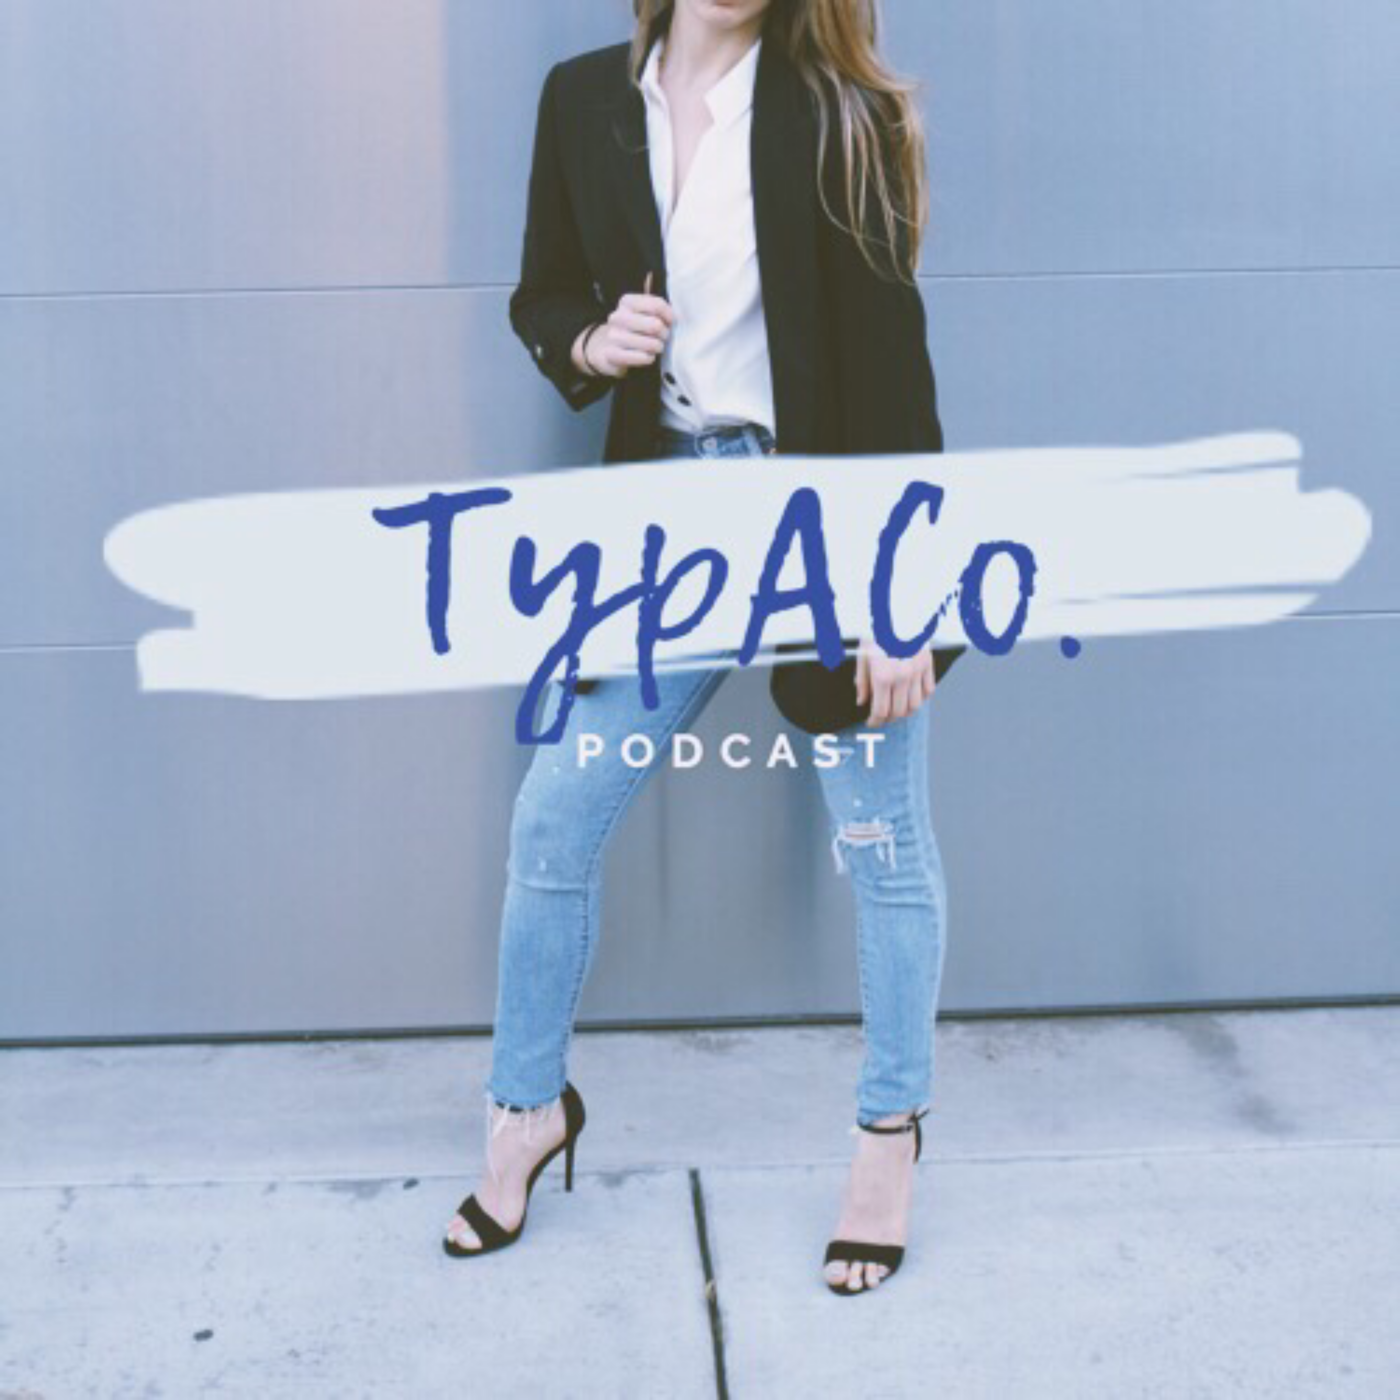 The Type A Podcast - For & About Impact Entrepreneurs